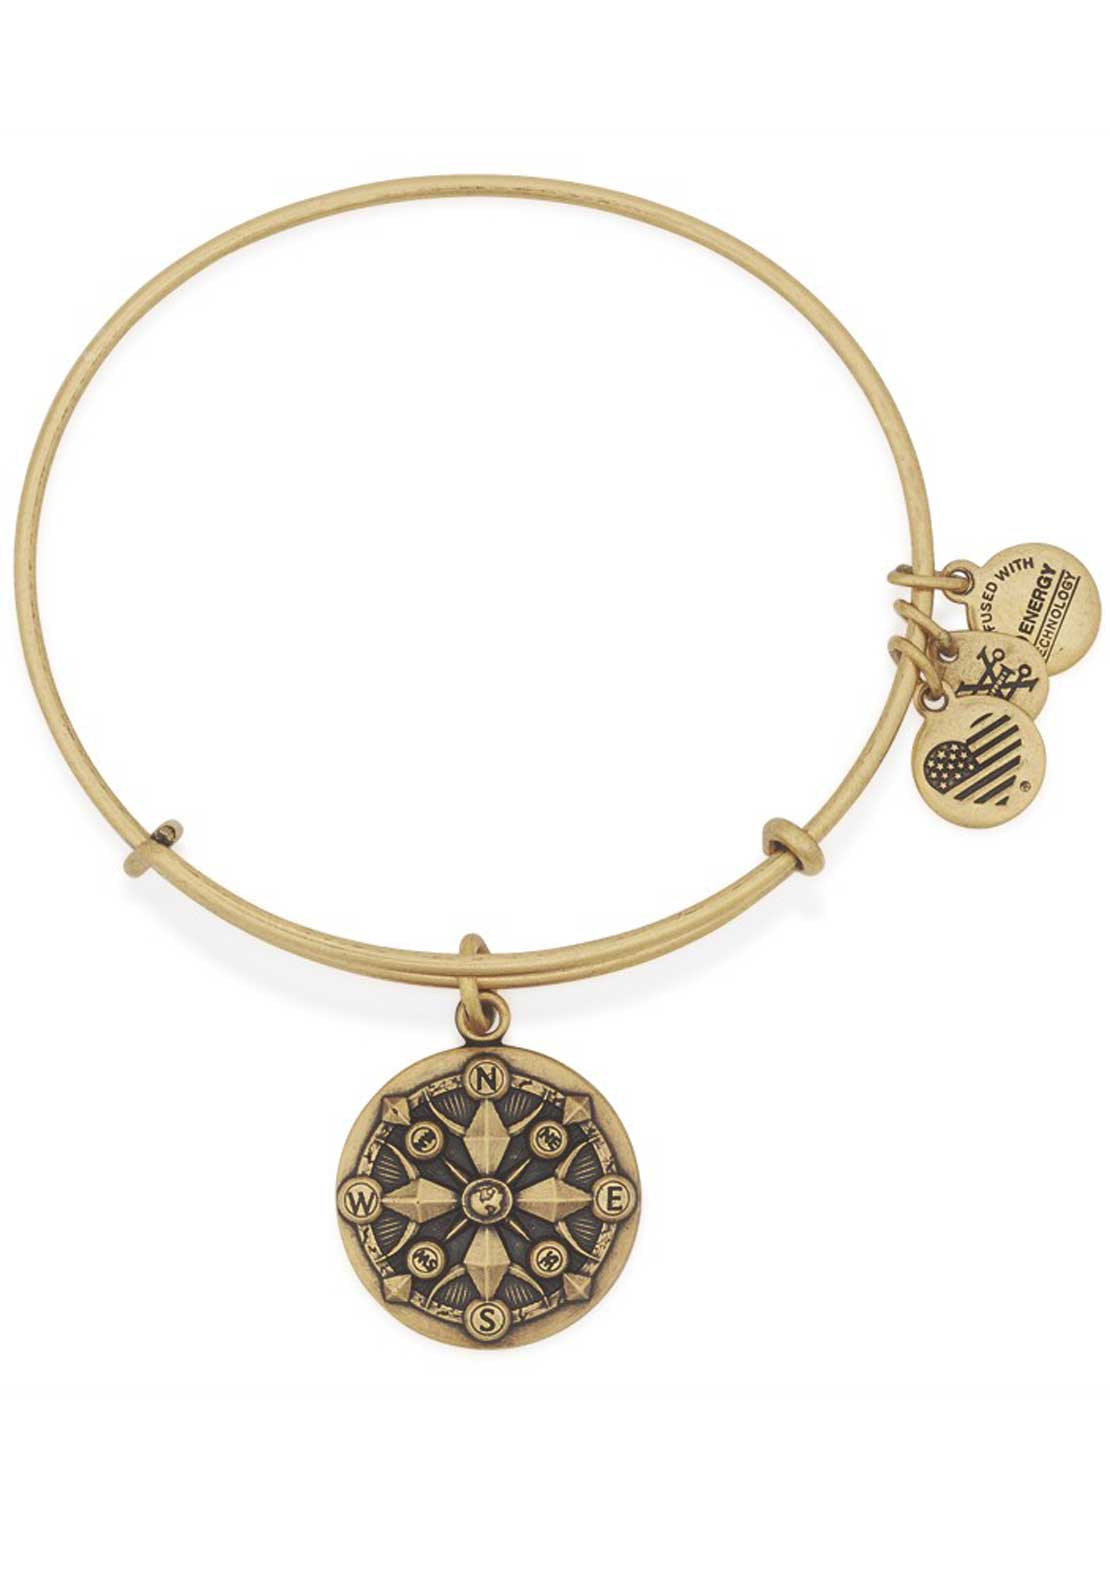 Alex and Ani Compass Bracelet, Gold